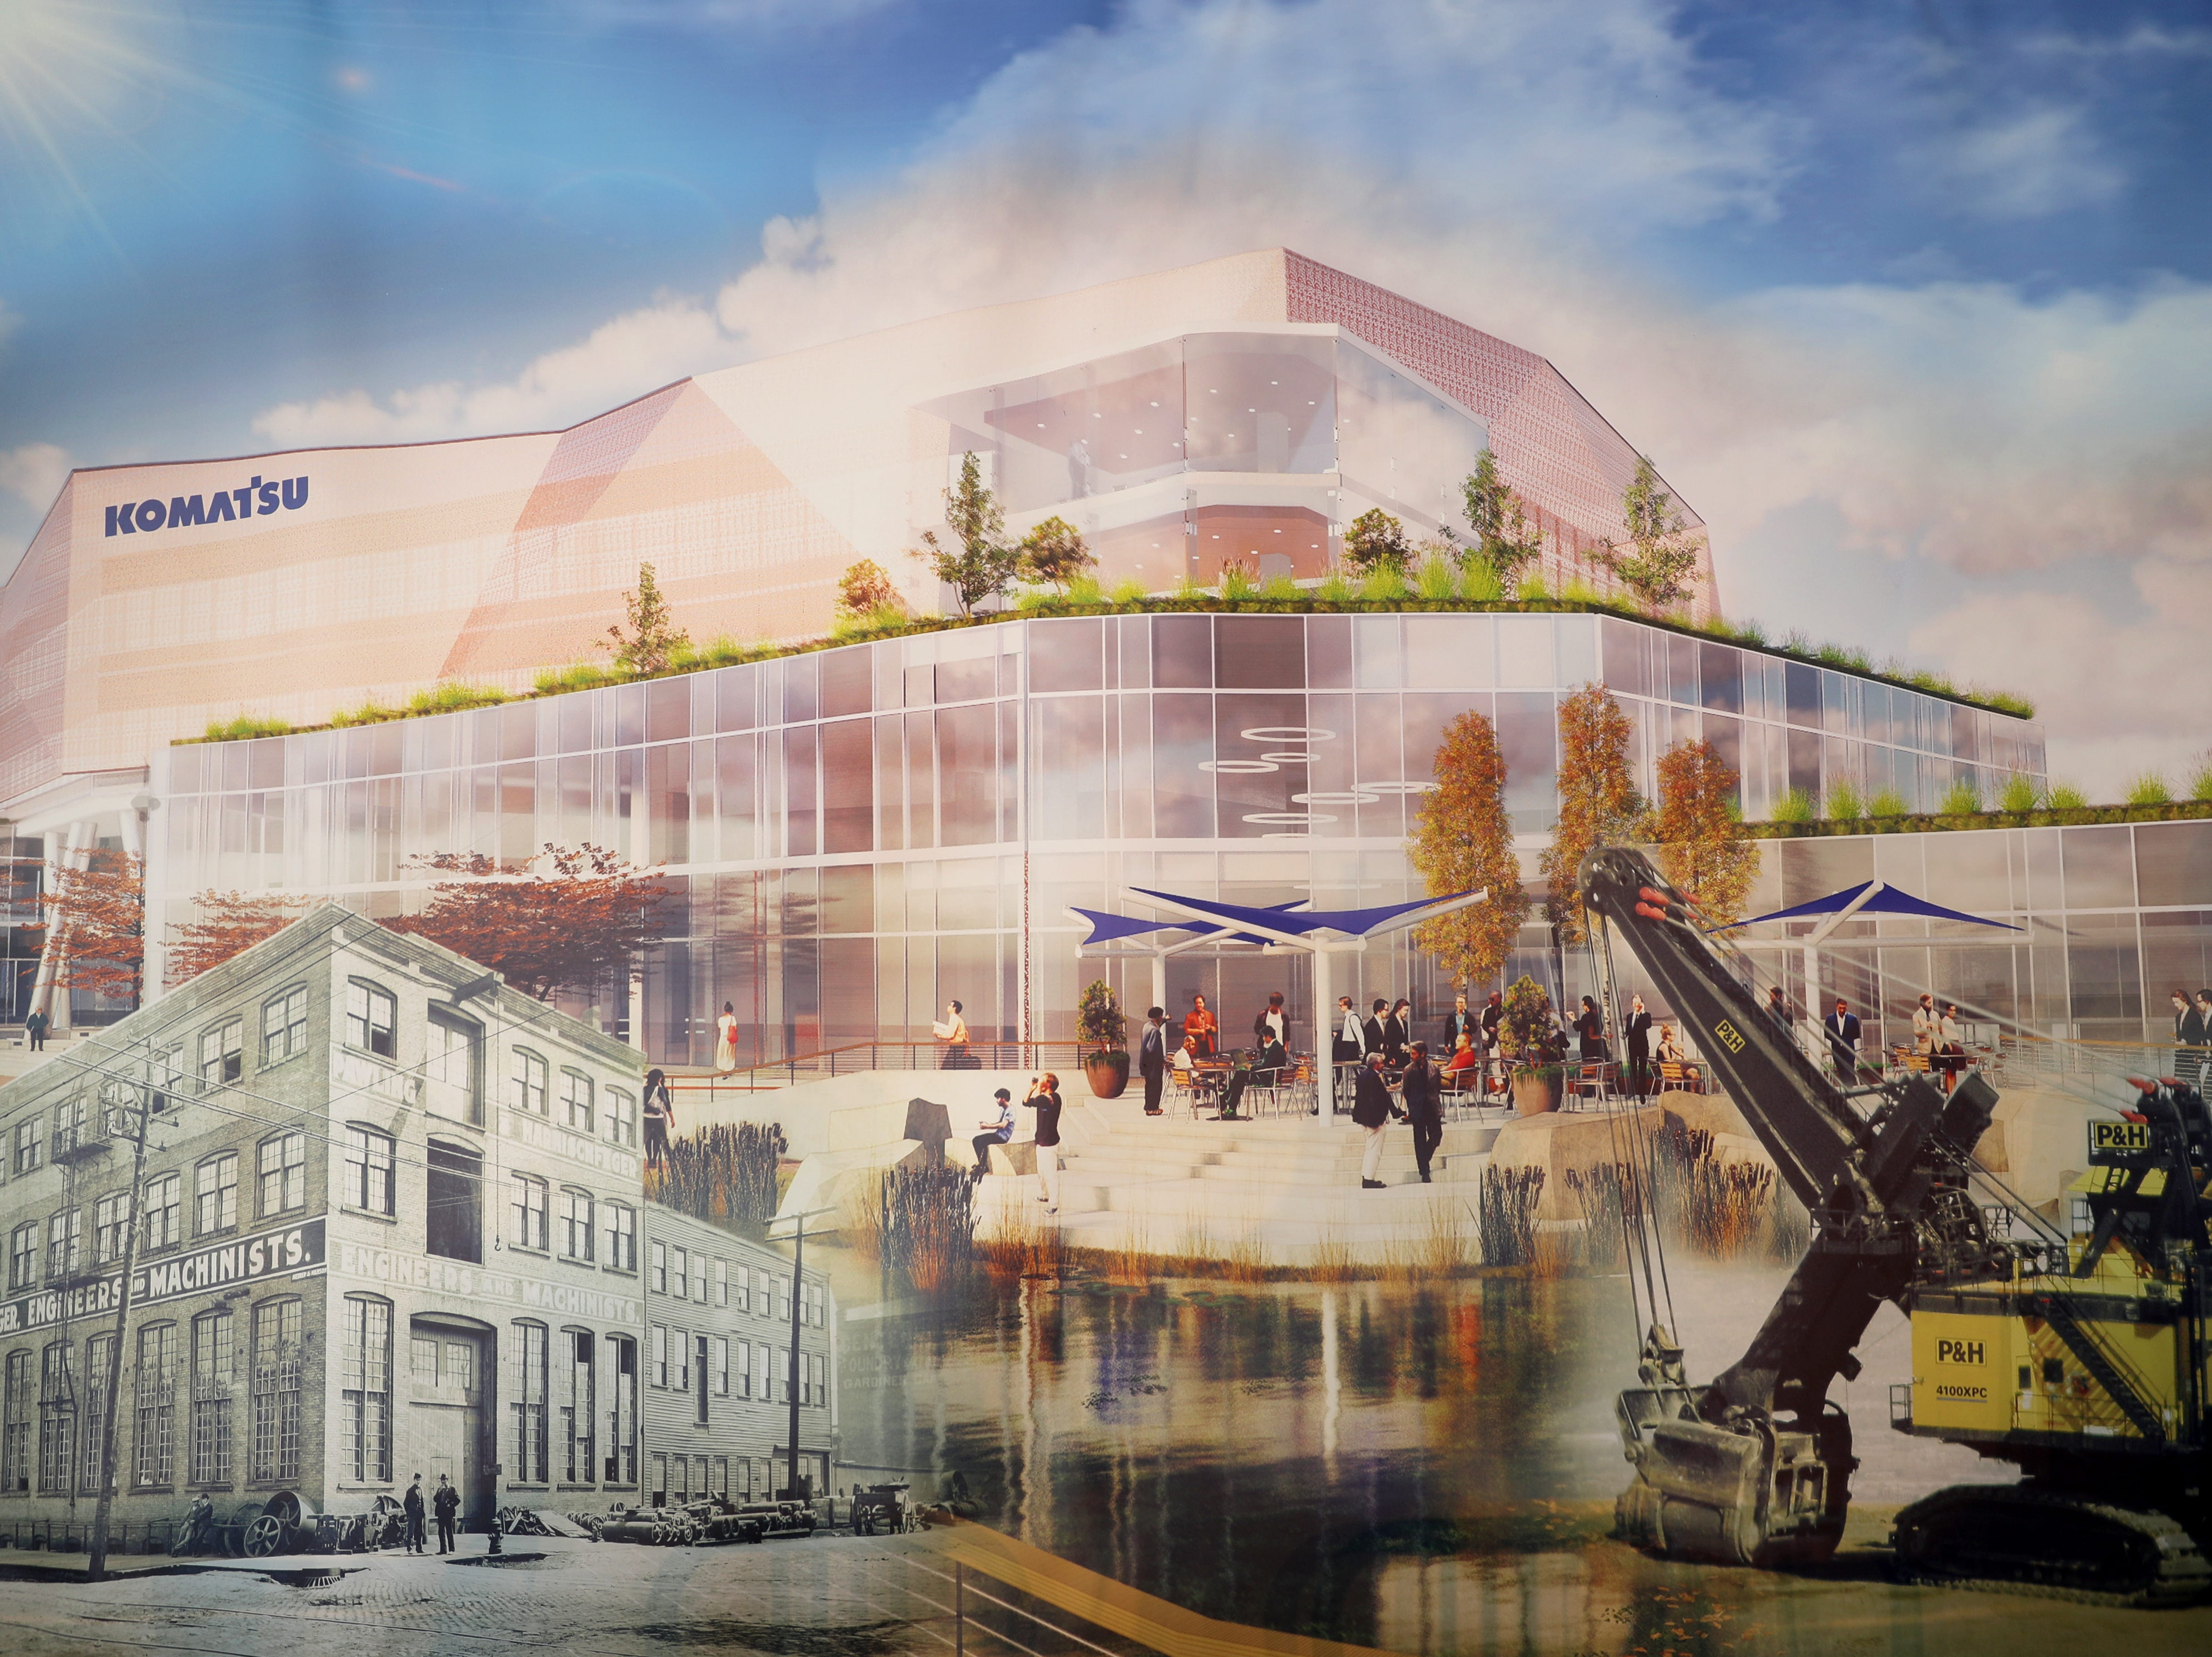 A rendering of the new Komatsu Mining Corp. development in Milwaukee's Harbor District, which will include office, manufacturing and training space, as well as a public RiverWalk.